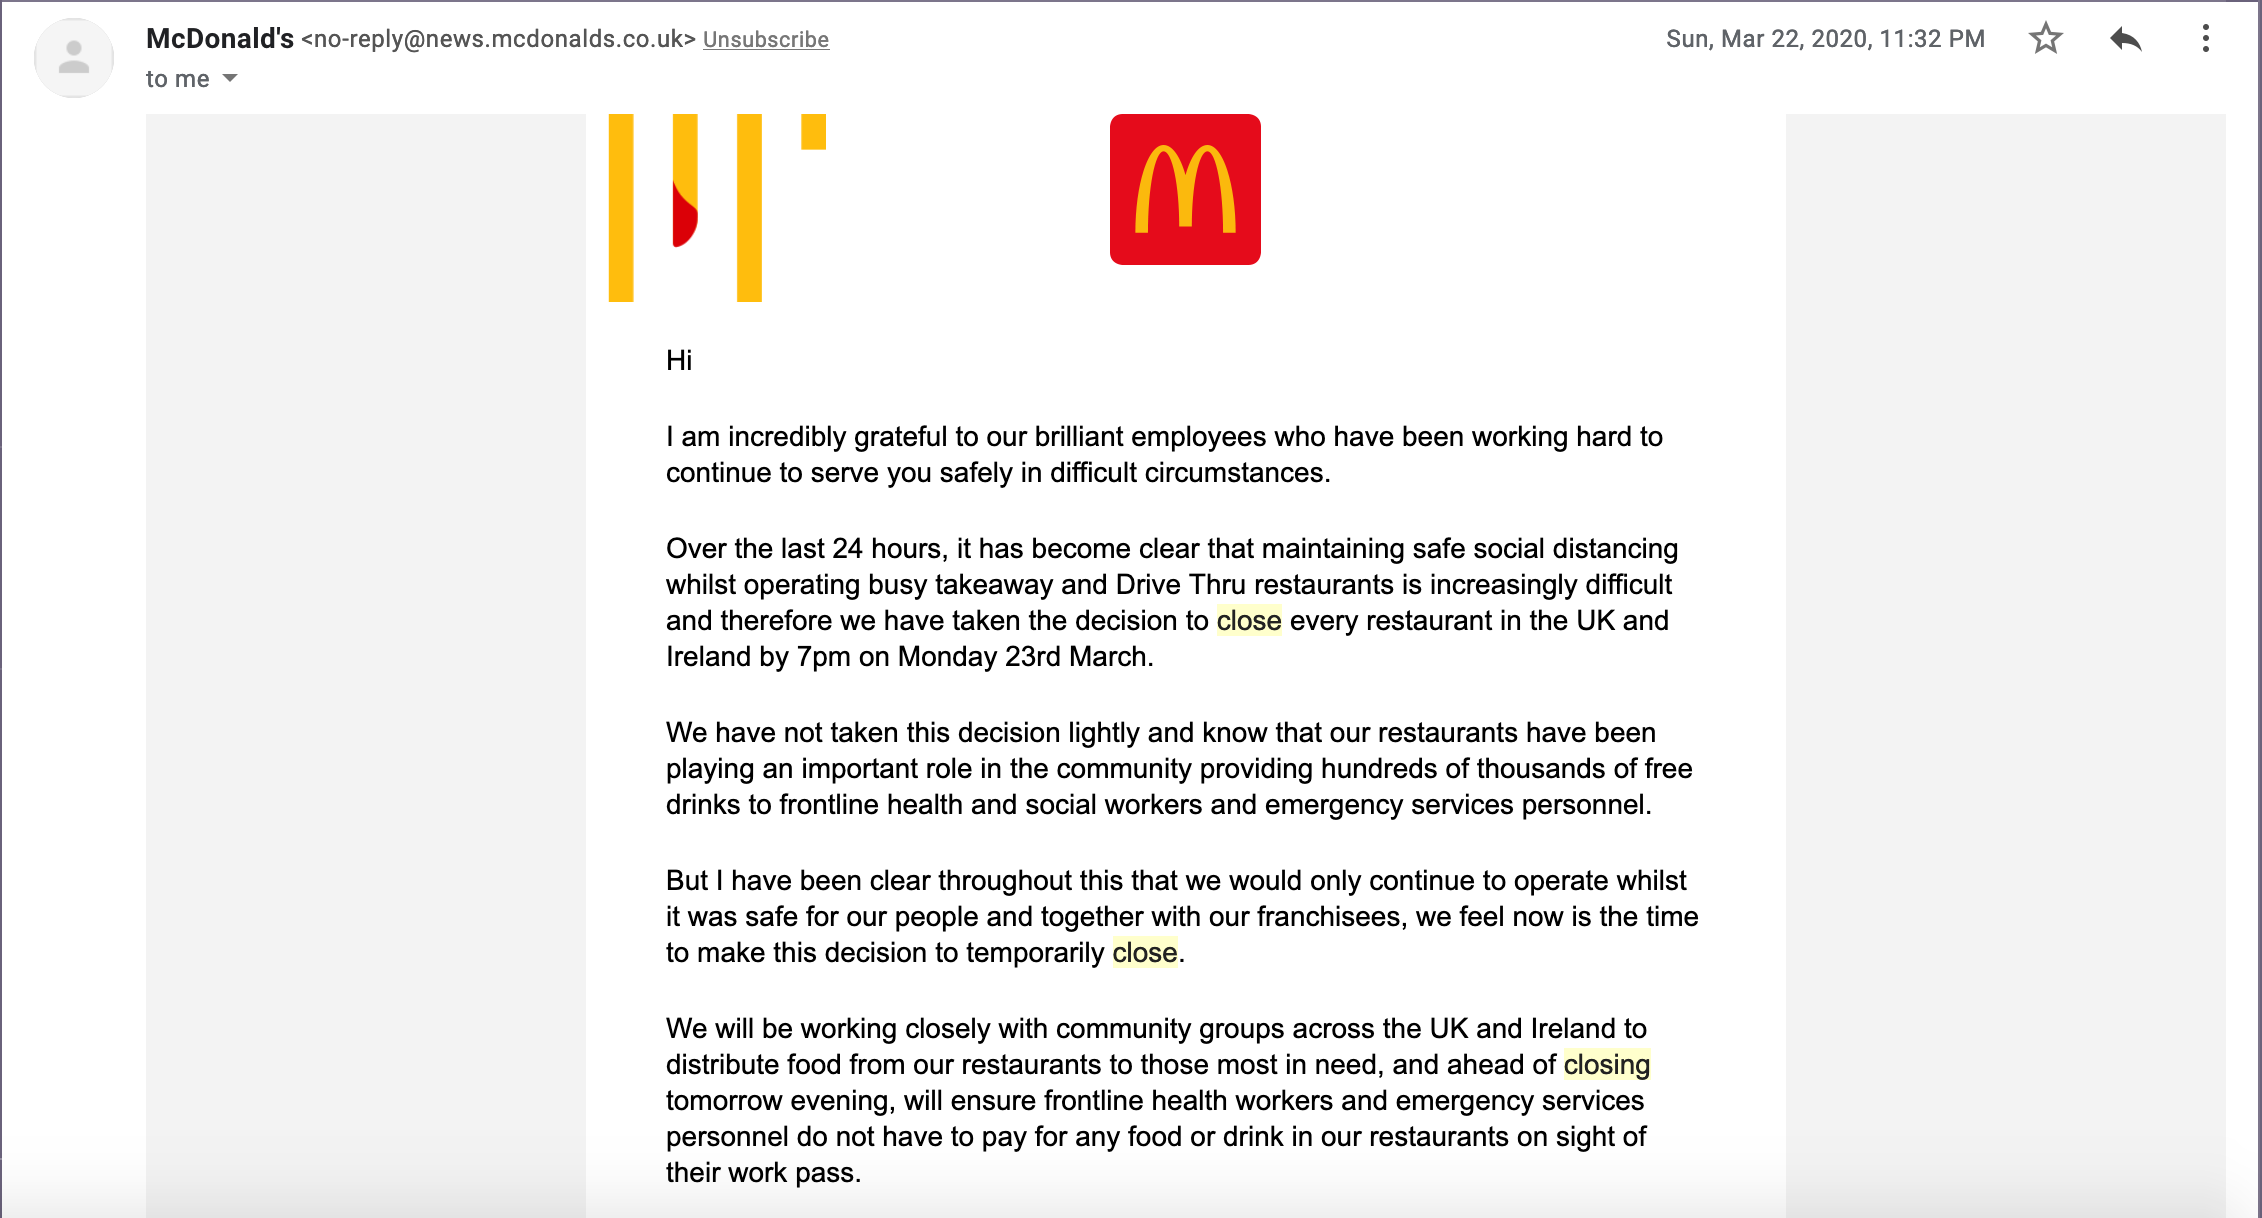 Screenshot from McDonald's email during COVID